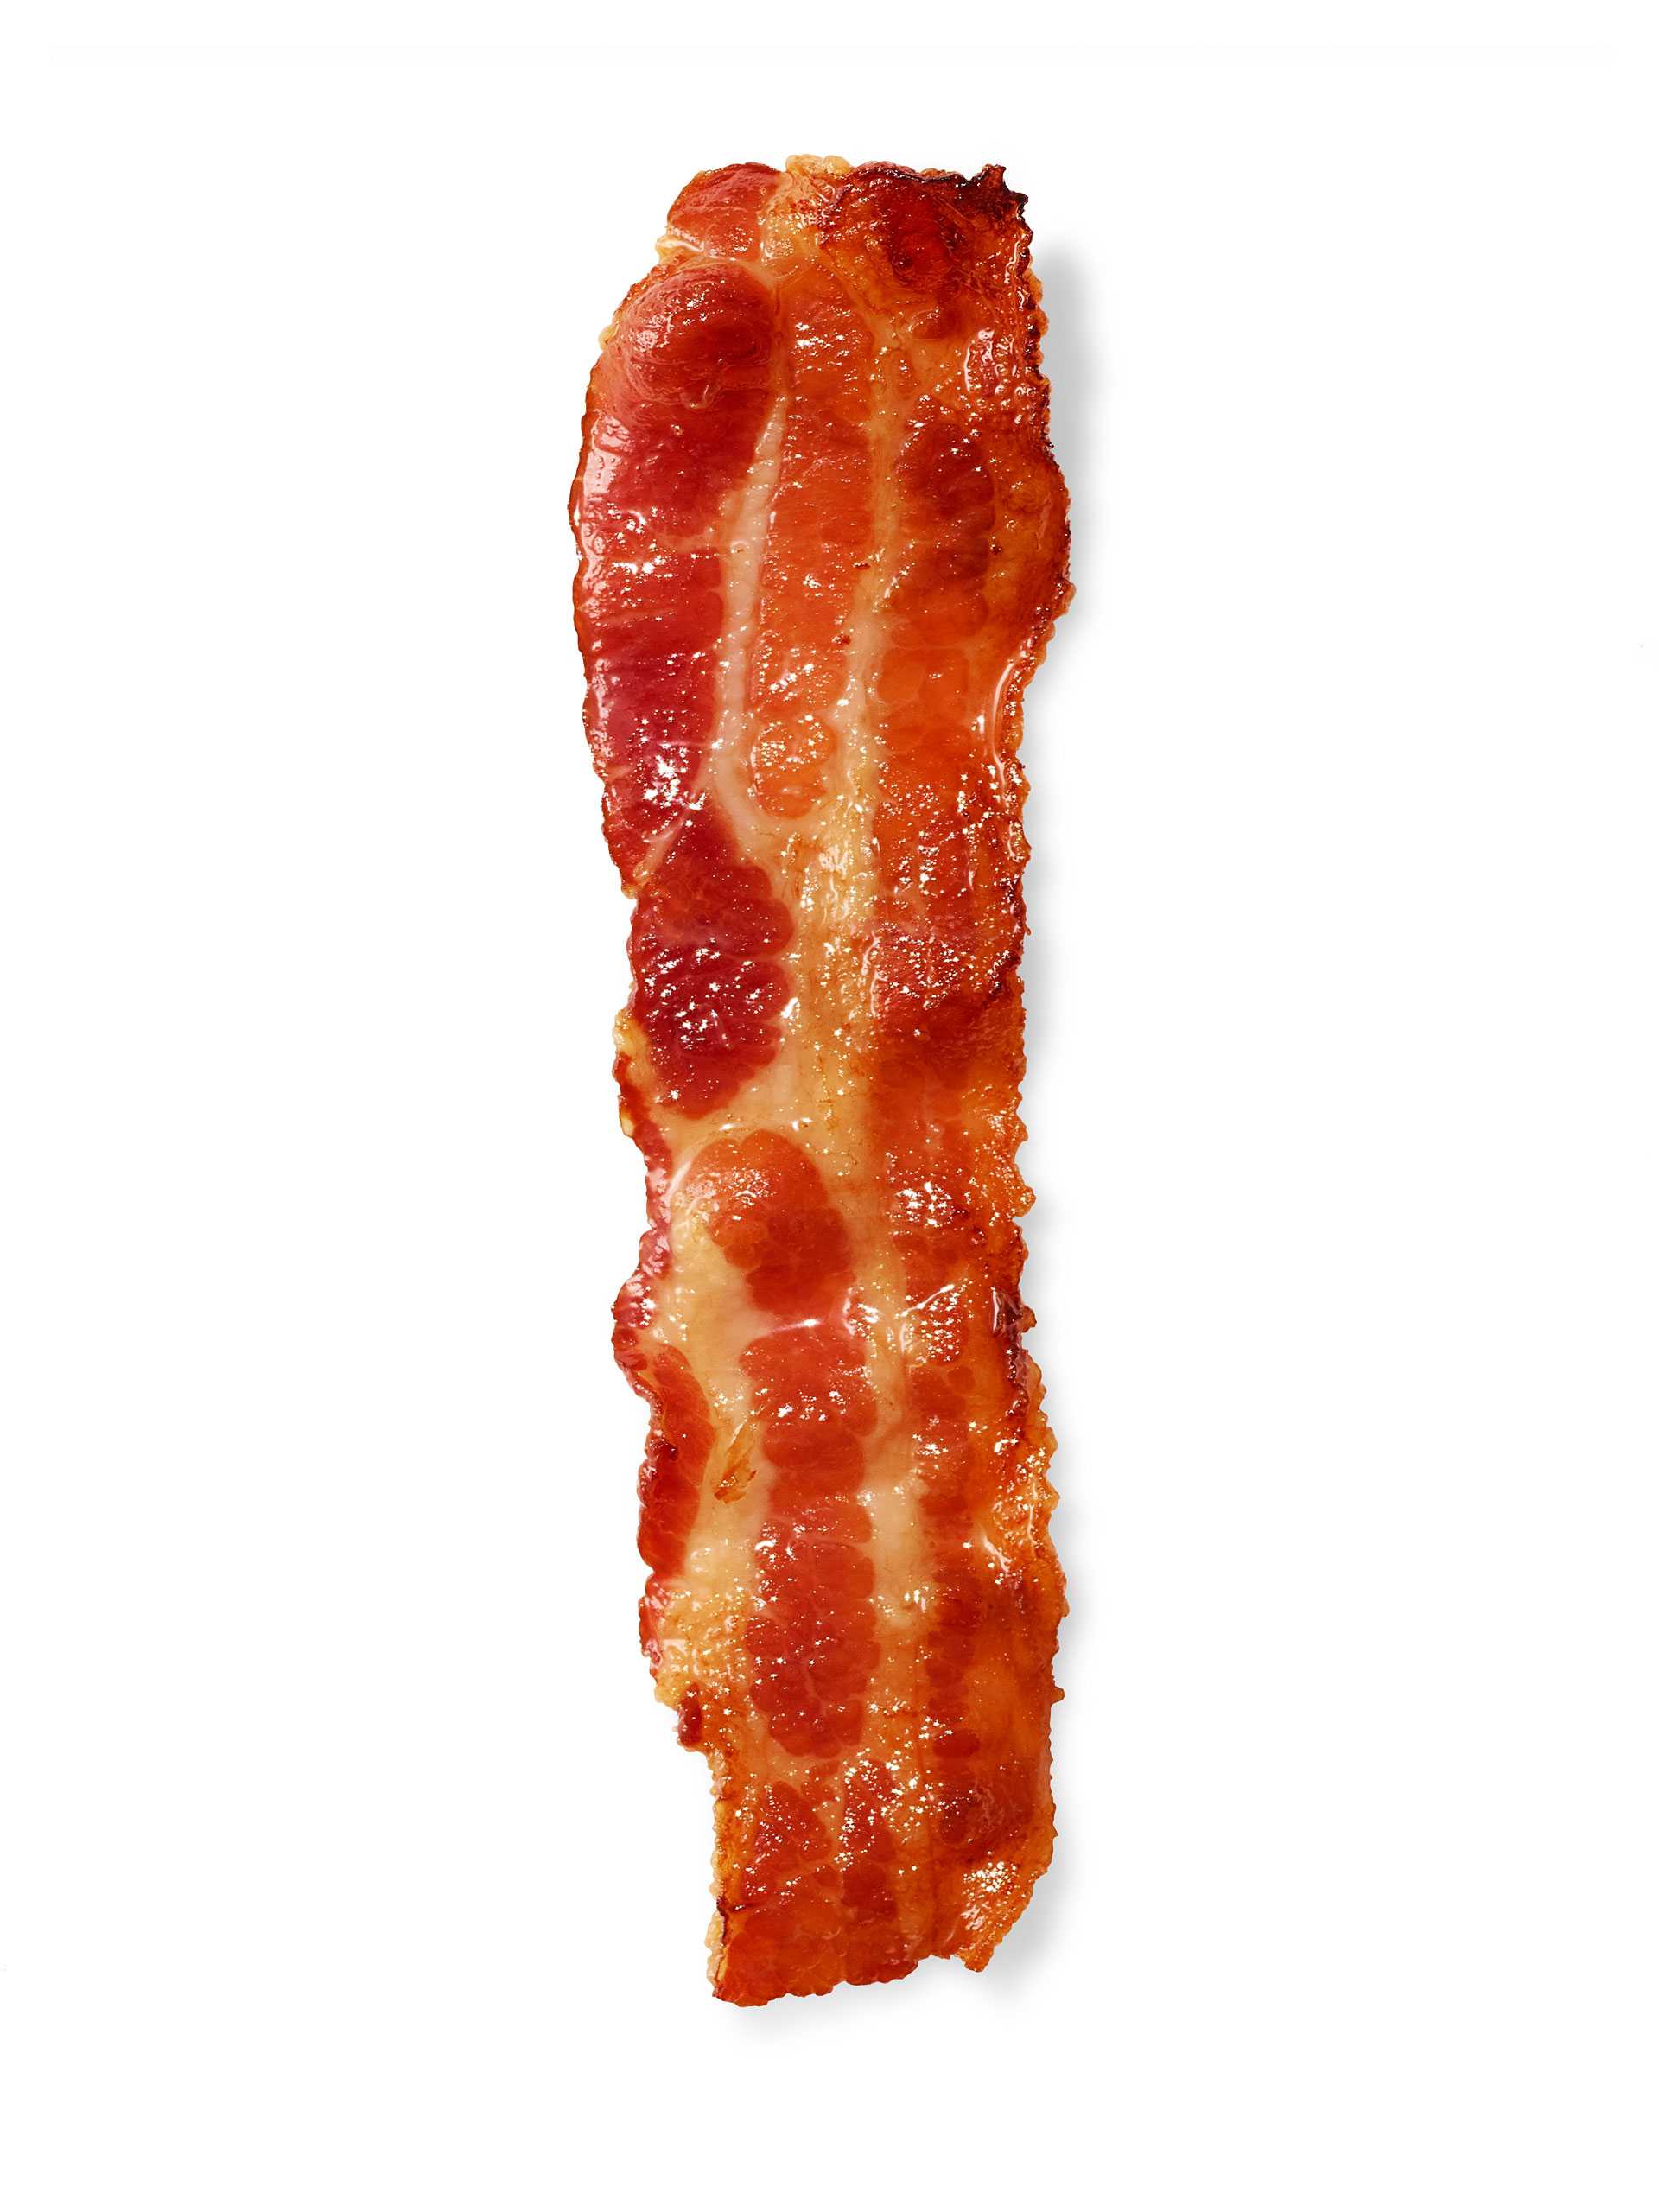 We're Serious, For the Love of Bacon